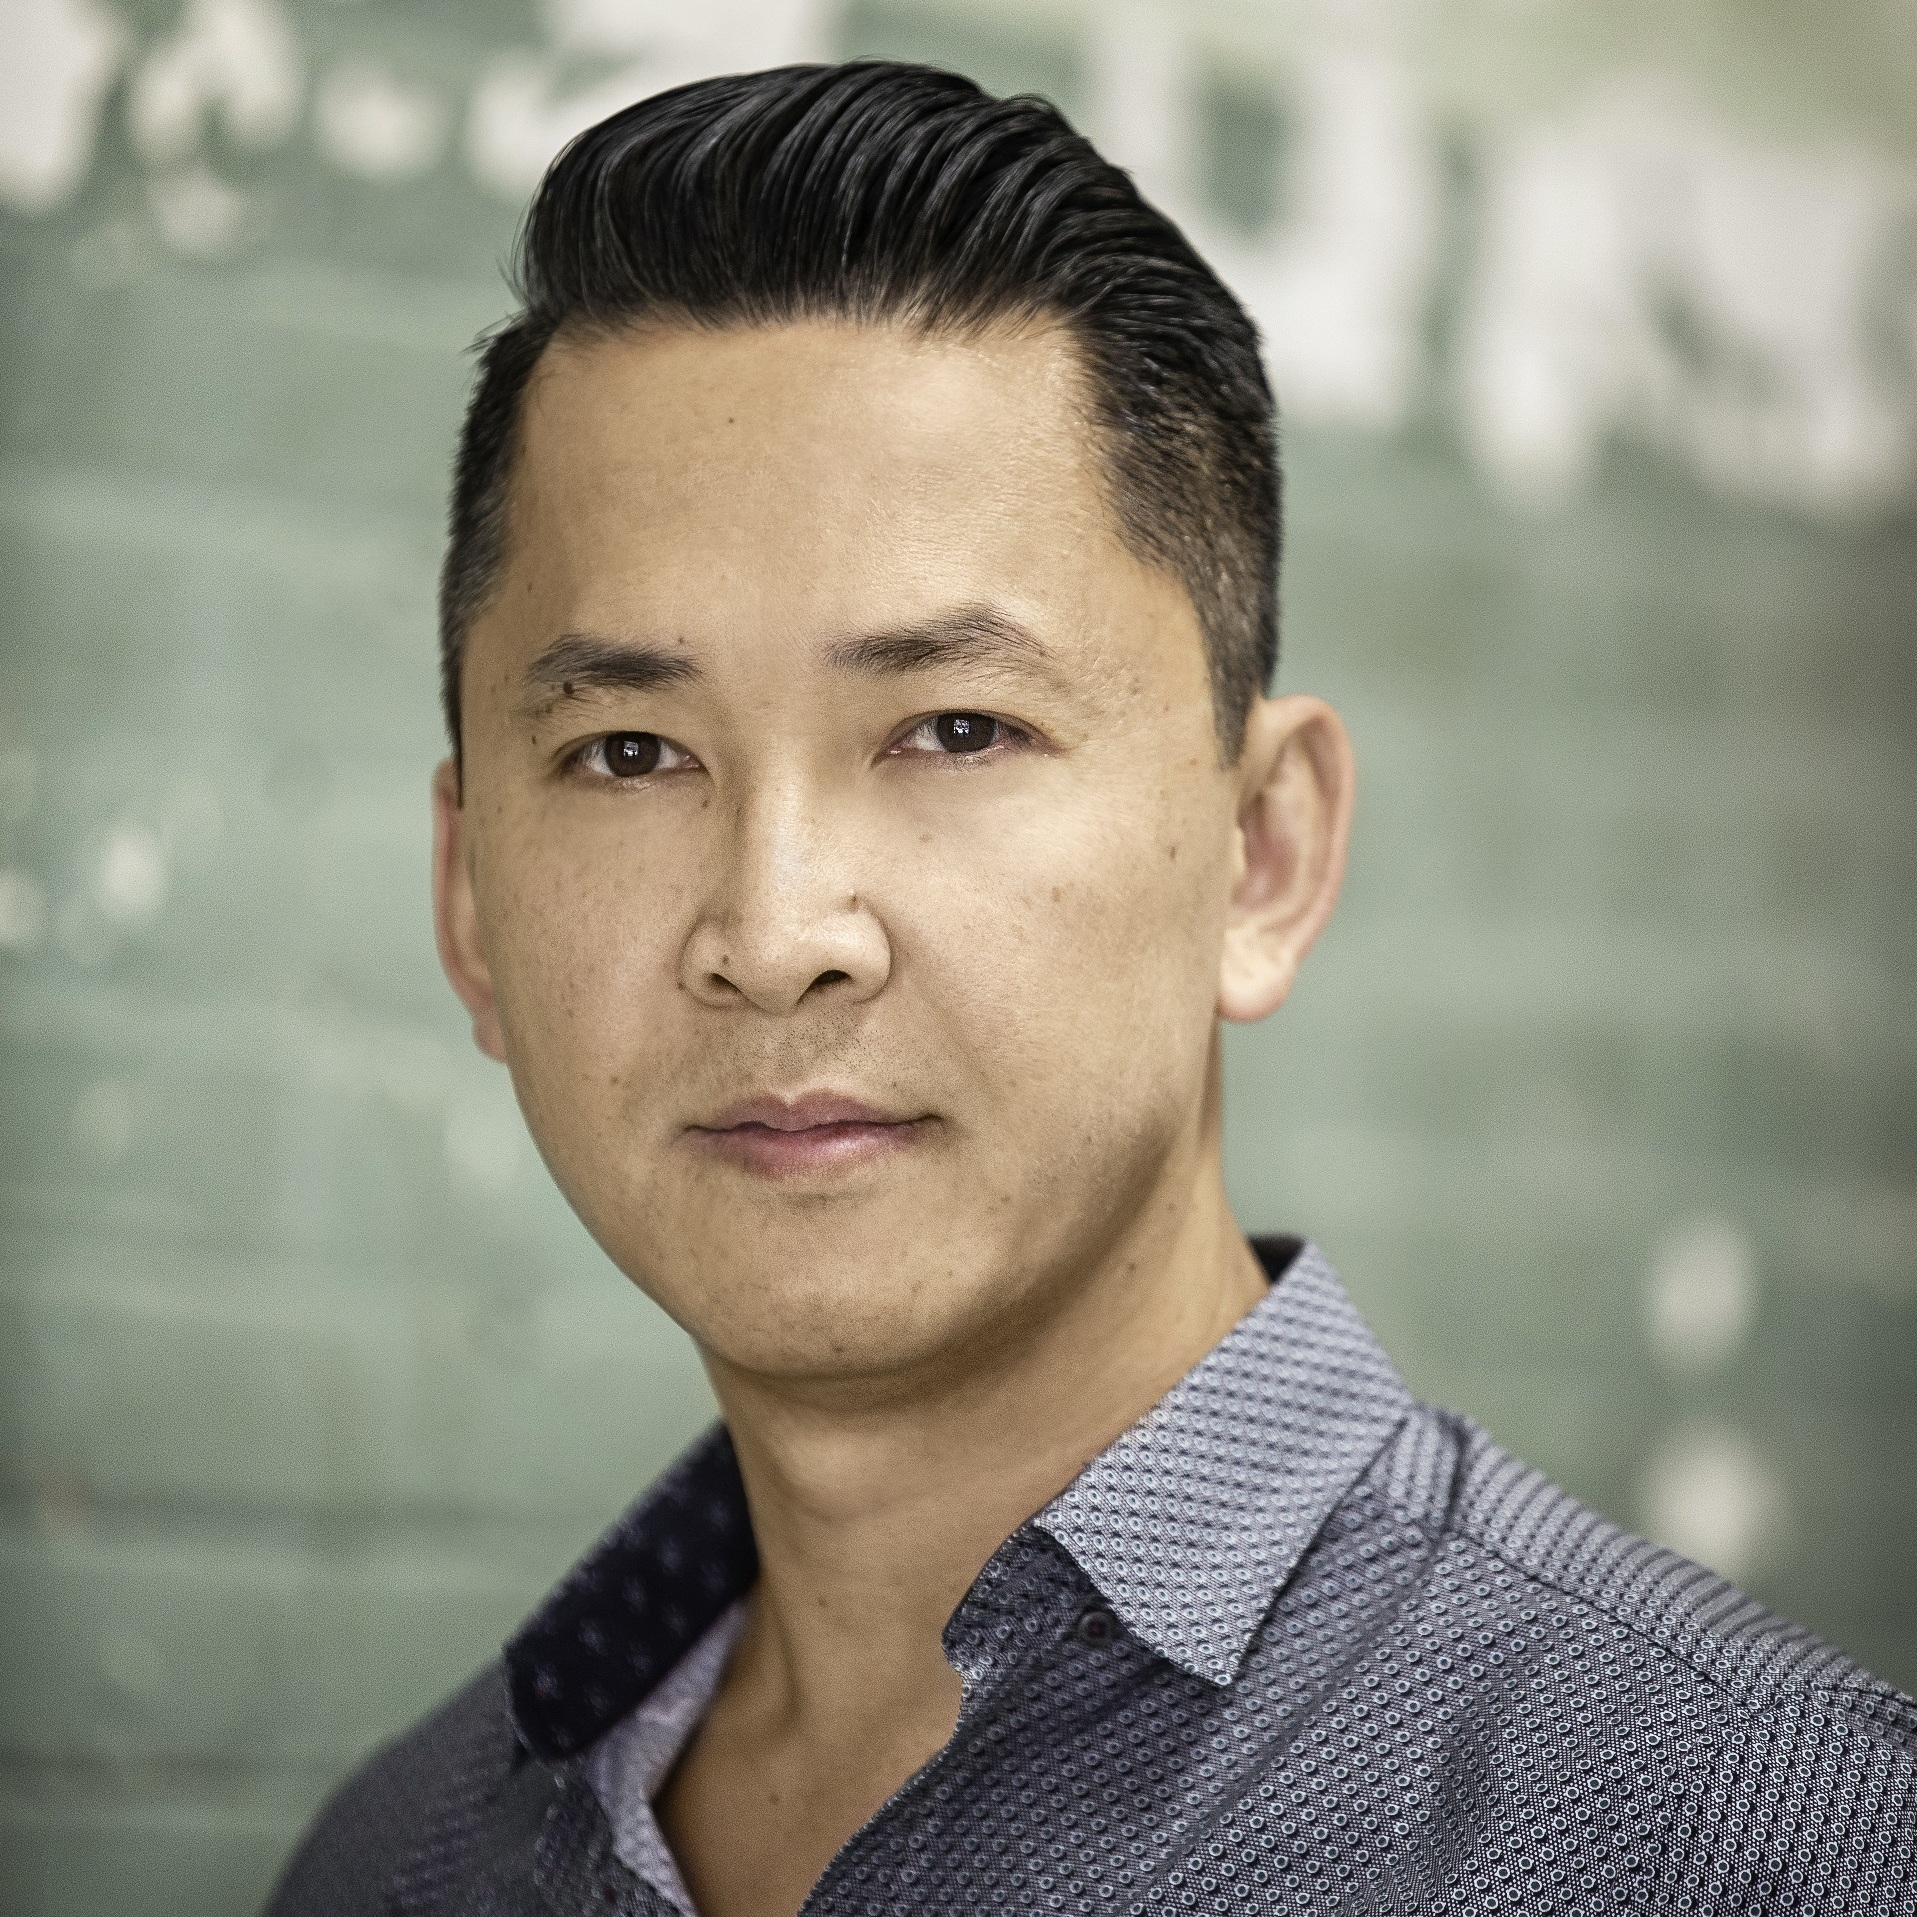 Viet Thanh Nguyen Says The U.S. Could 'Lose Its Soul' With Migrant Family Separations